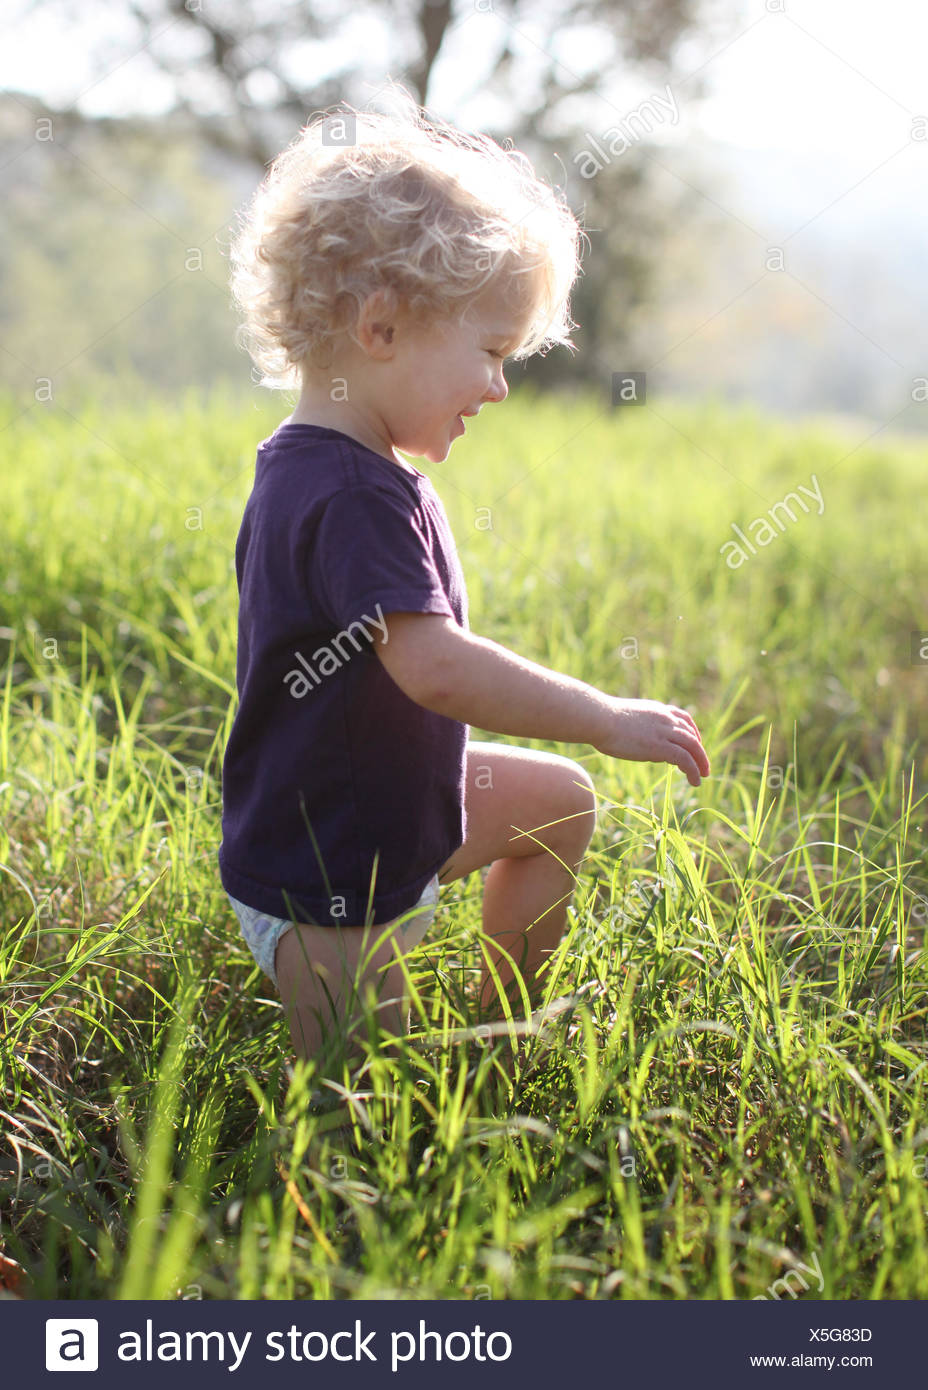 Boy kneeling in the grass - Stock Image